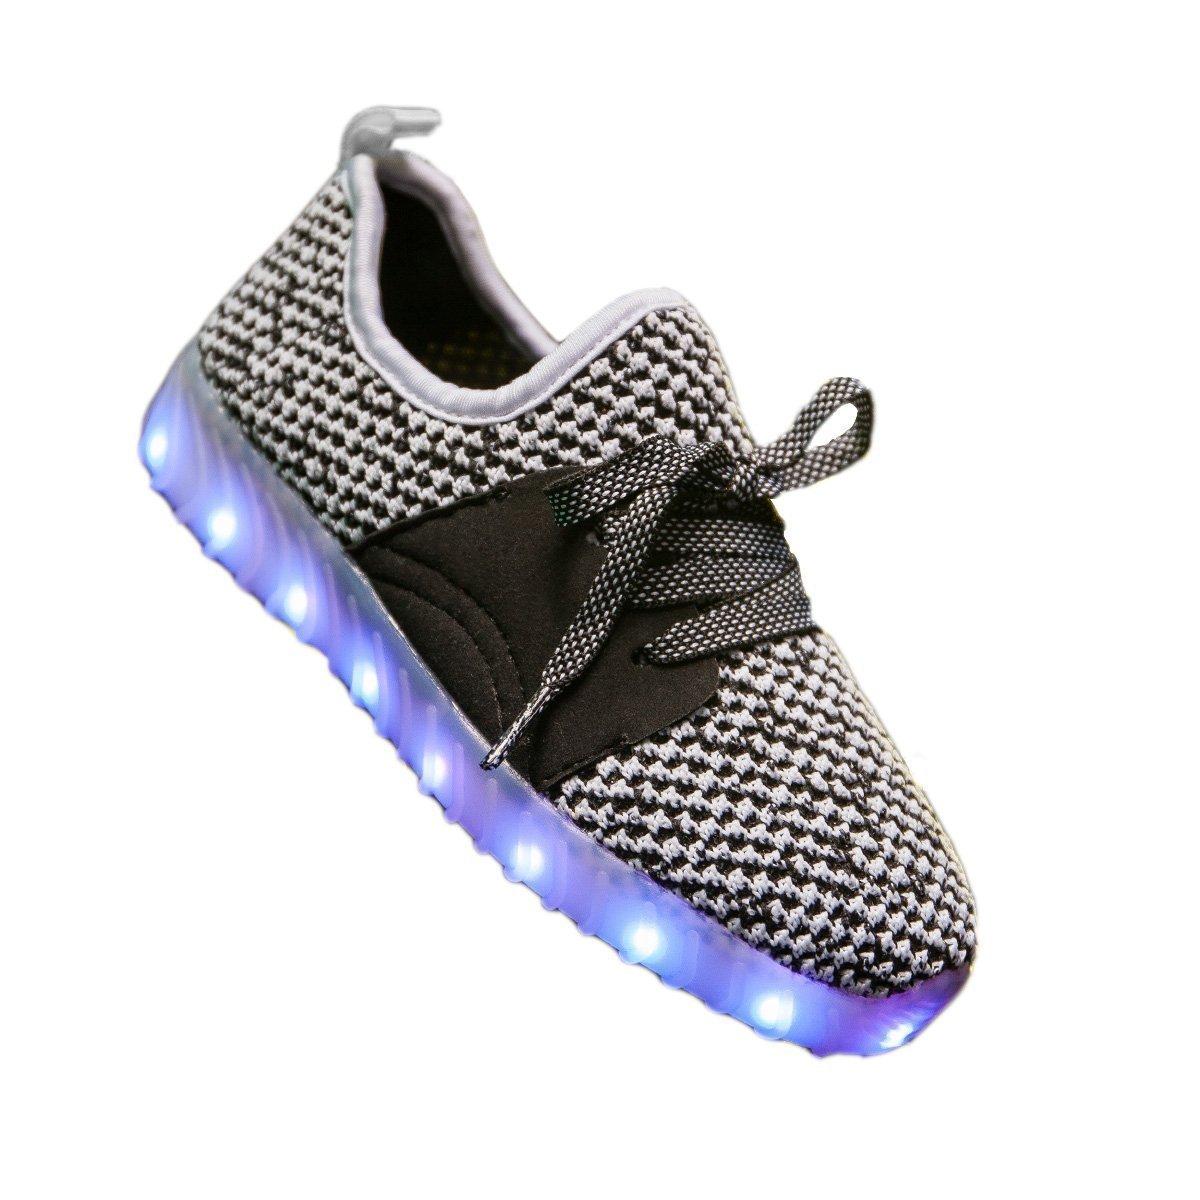 FG21ds21g Colorful LED Light Up Running Shoes for Kids USB Charging Flashing Sneakers Toddler//Little Kid//Big Kid